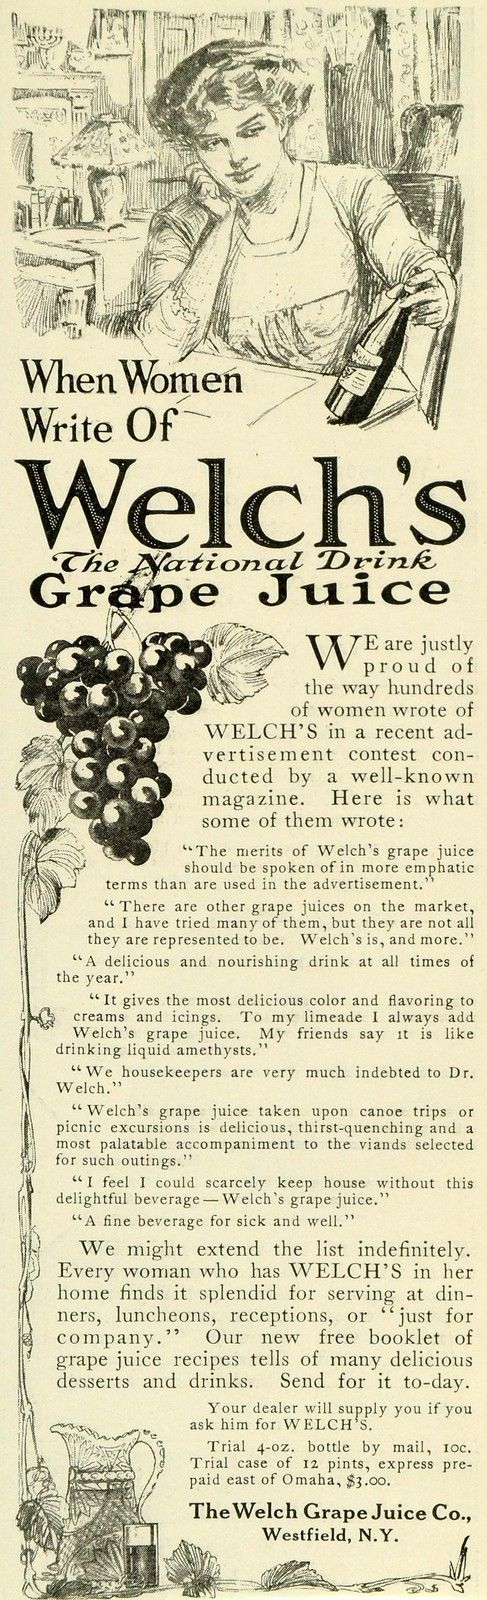 1911 Ad for Welch's Grape Juice